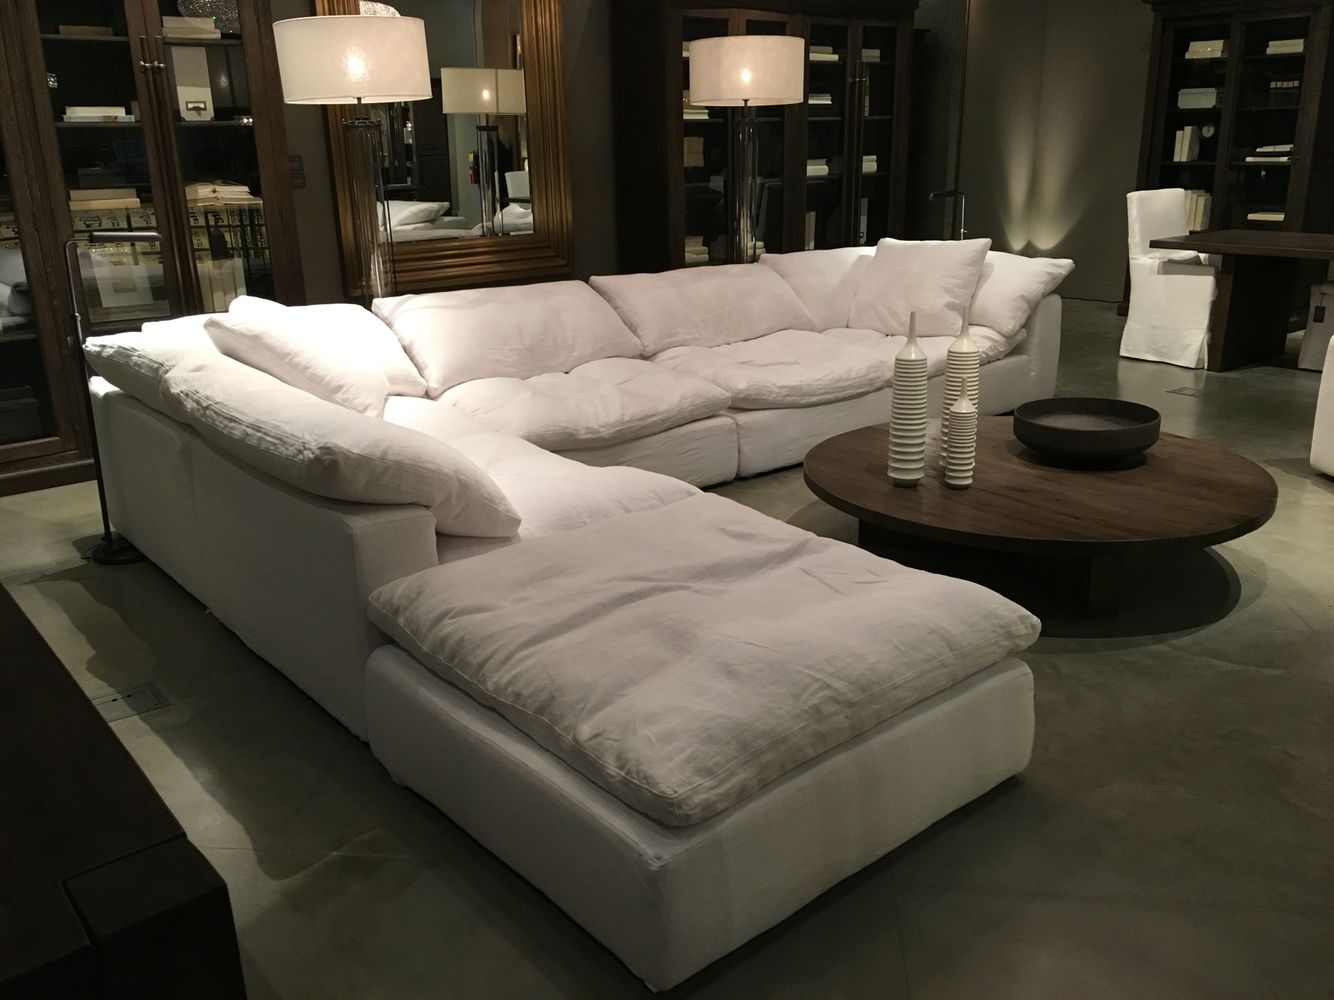 Restoration hardware sectional cloud couch future for Comfortable couches for sale